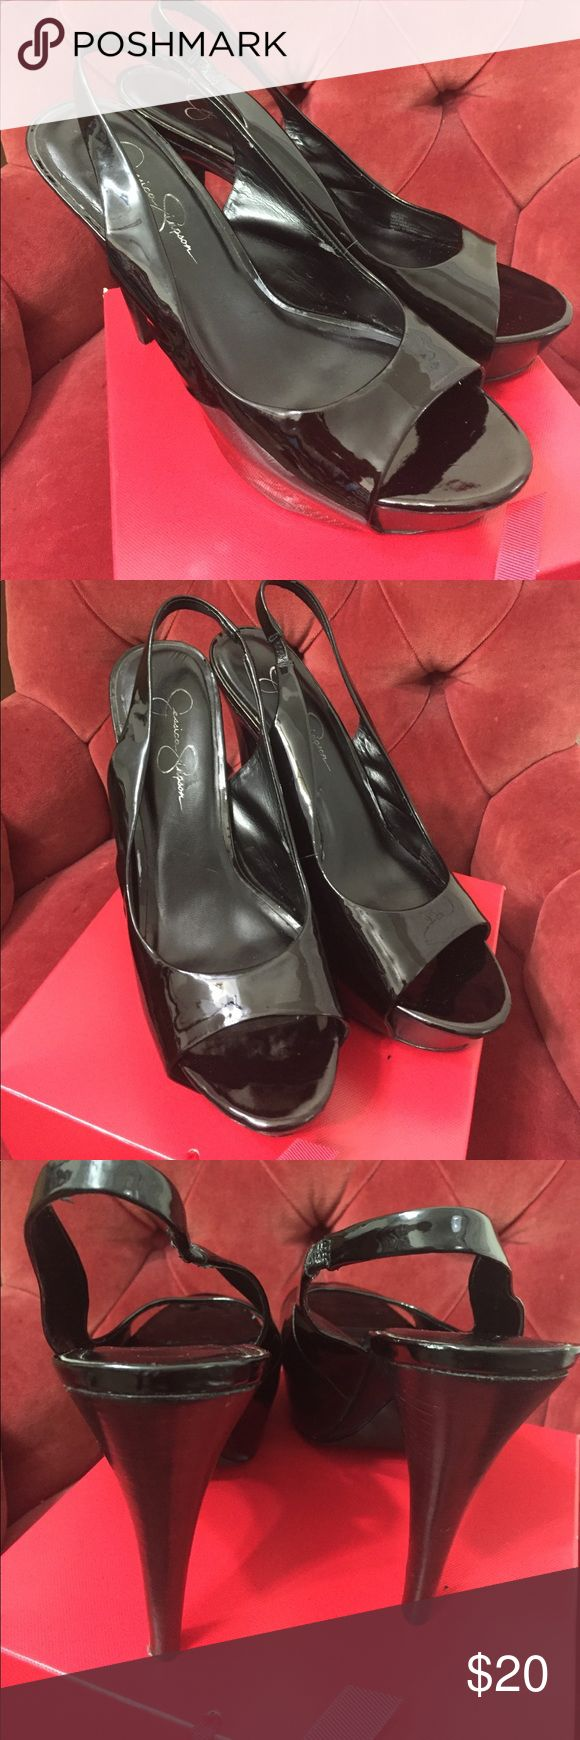 Jessica Simpson Sz 9 black patent leather shoes These are size 9 Jessica Simpson Astor slingback platform high-heeled upper leather shoes. The height on the heel is 5 inches,  the height on the platform is 1 inch. There is one small scuff on the inside of right foot, these are gently worn shoes in good condition. Jessica Simpson Shoes Platforms